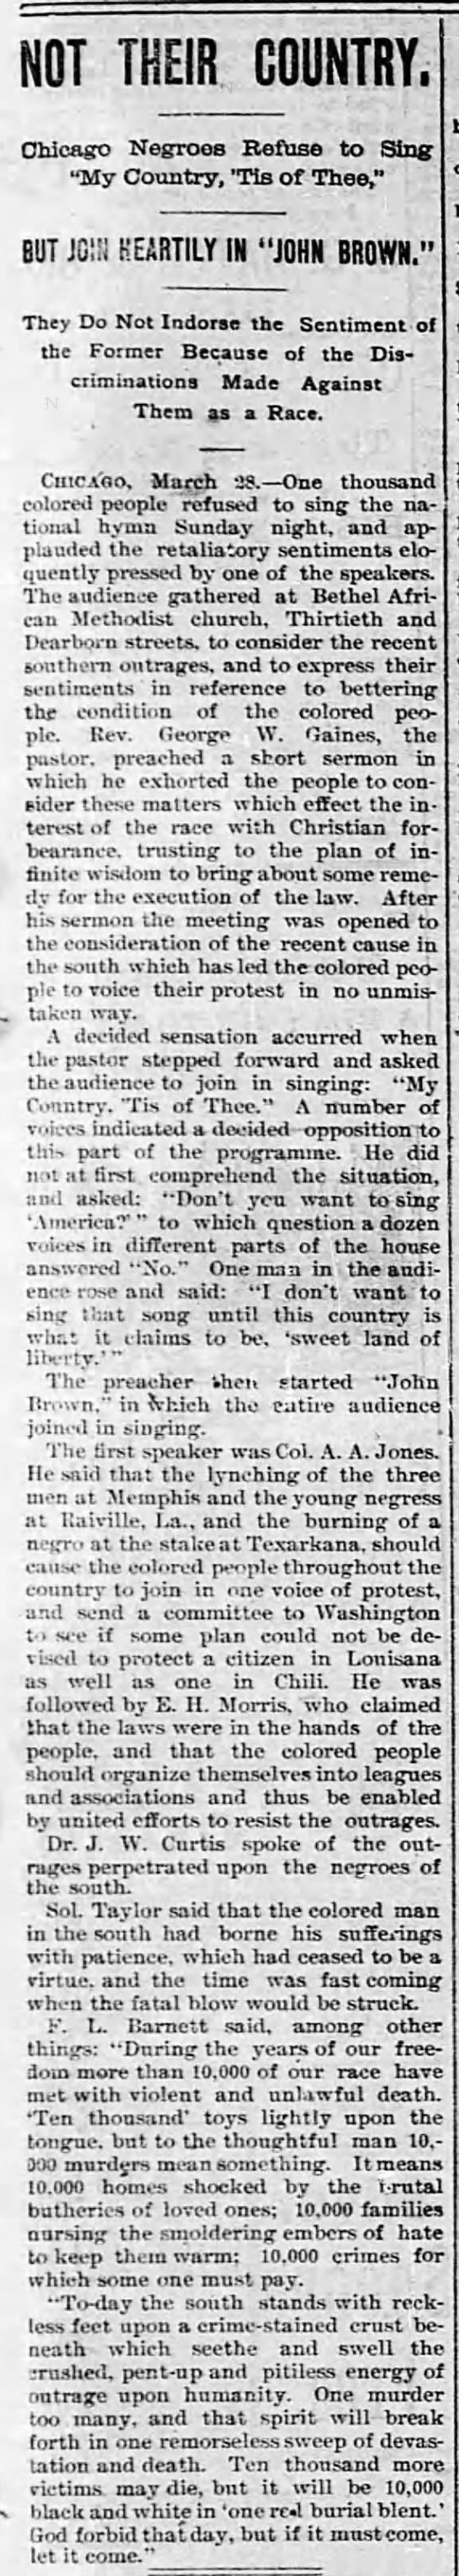 Not Their Country, The Decatur Herald (Decatur, Illinois) March 29, 1892, page 1 -